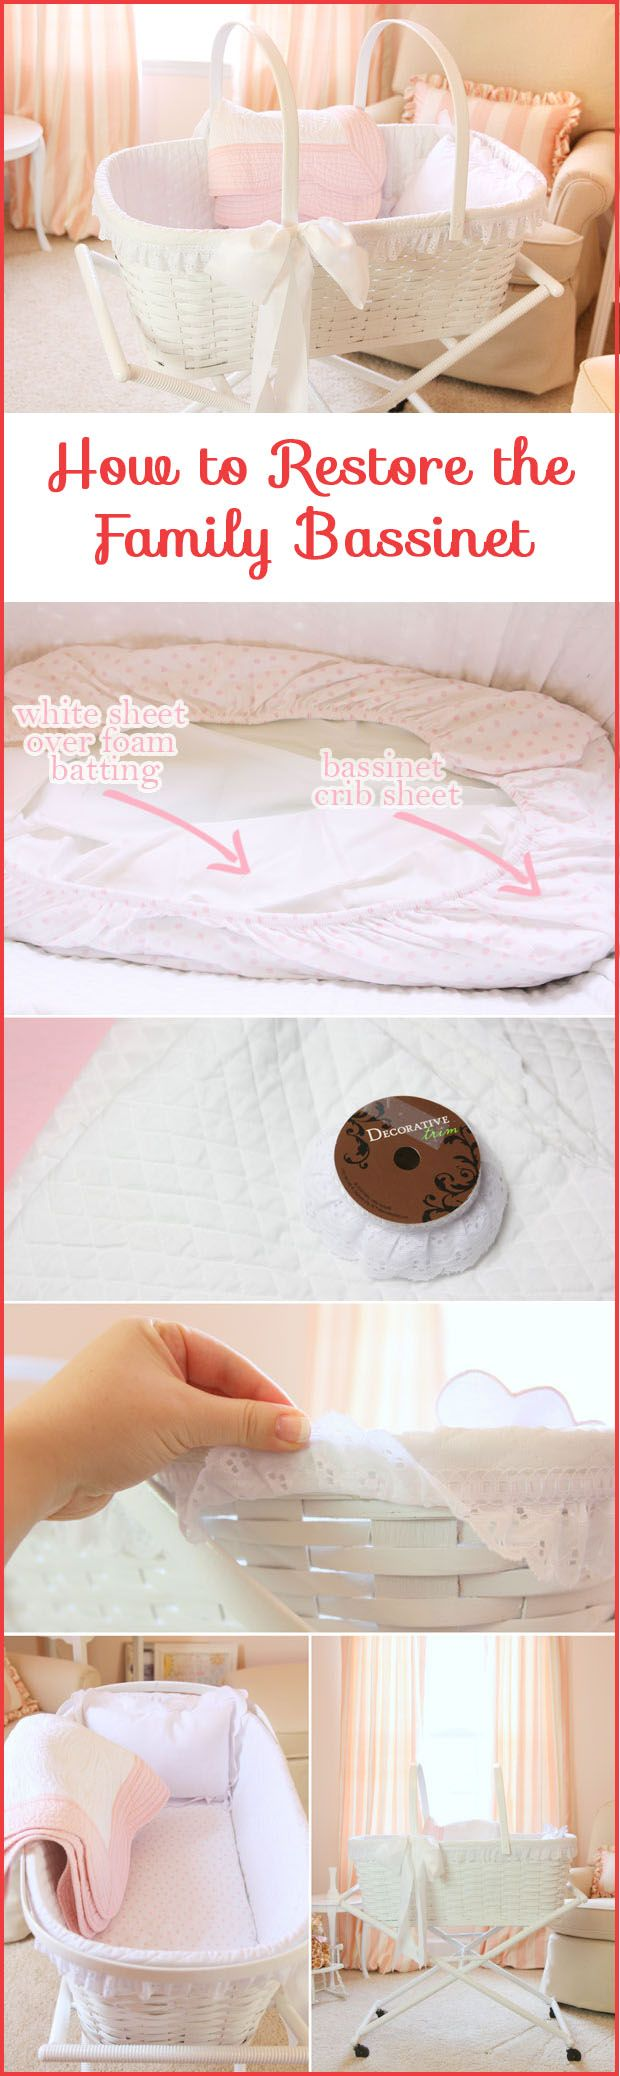 Baby bed dubizzle - 202 Best Images About Baby On Pinterest Restoration Hardware Baby Homemade Baby And Cozy Cover